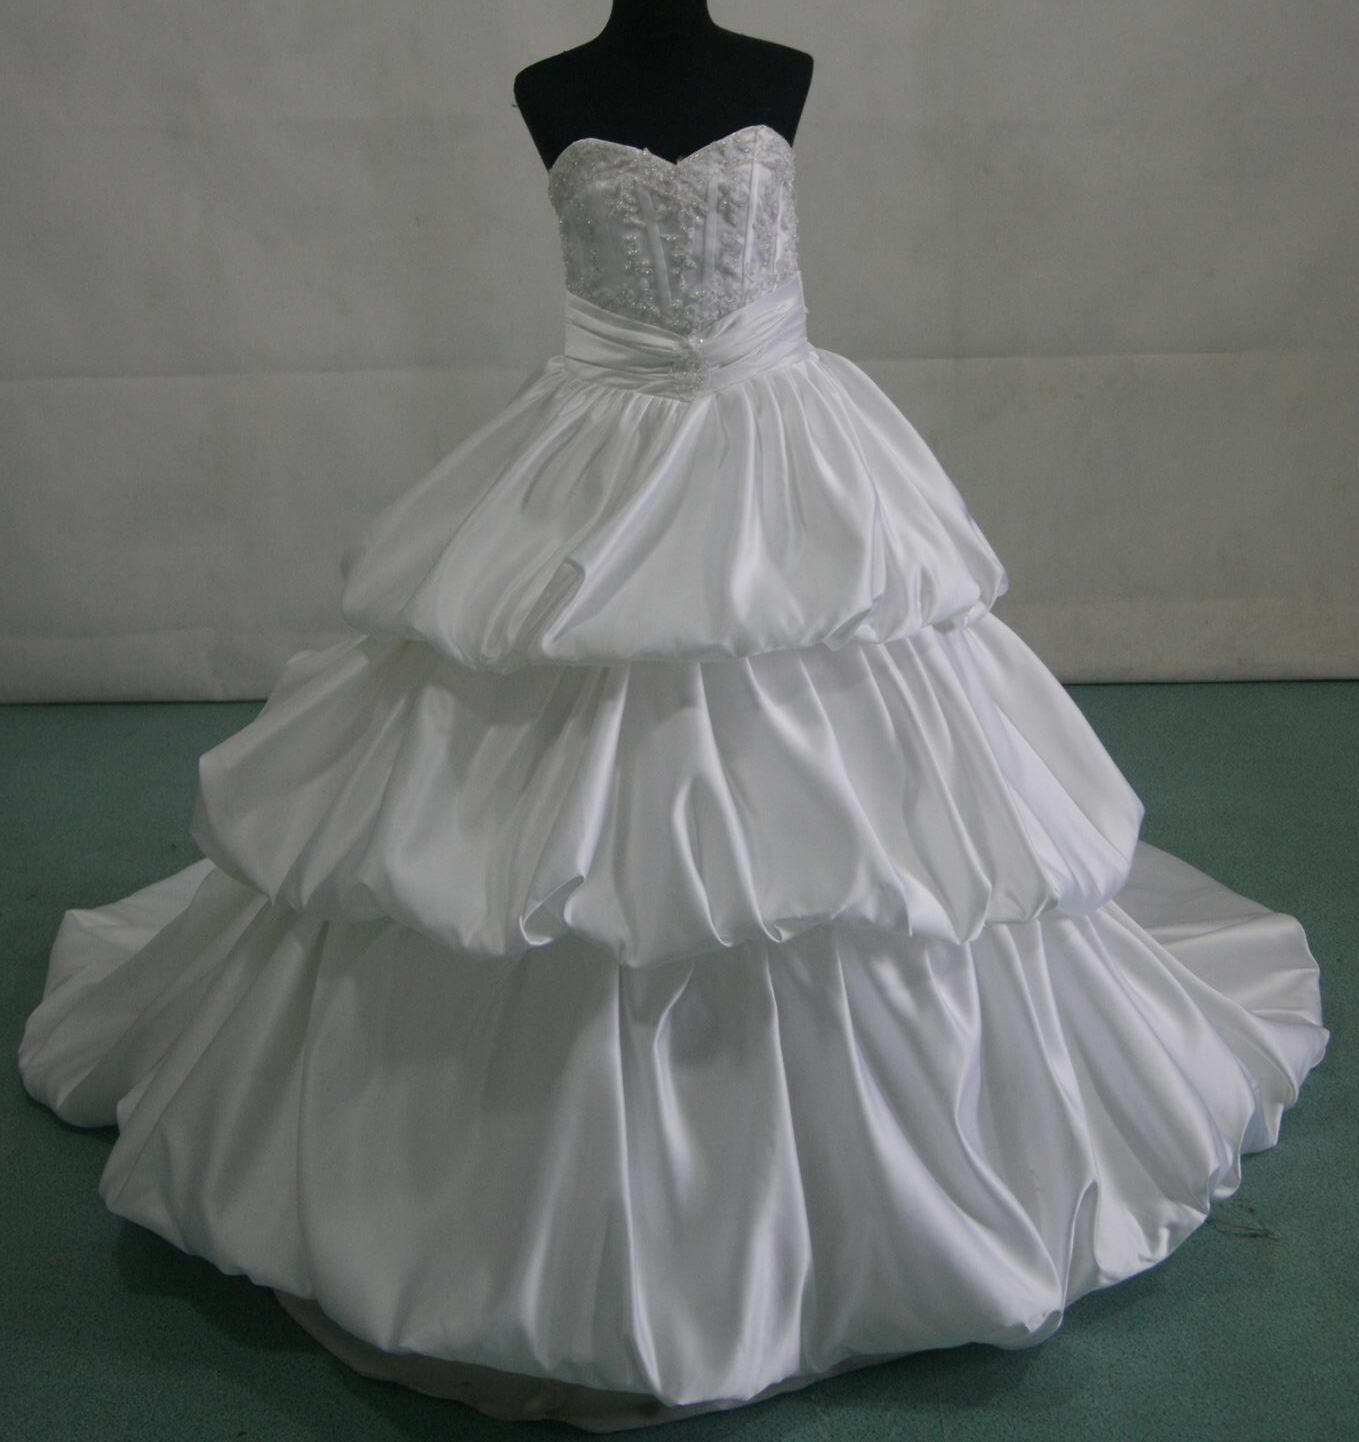 Bubble tiered gown - miniature bride.